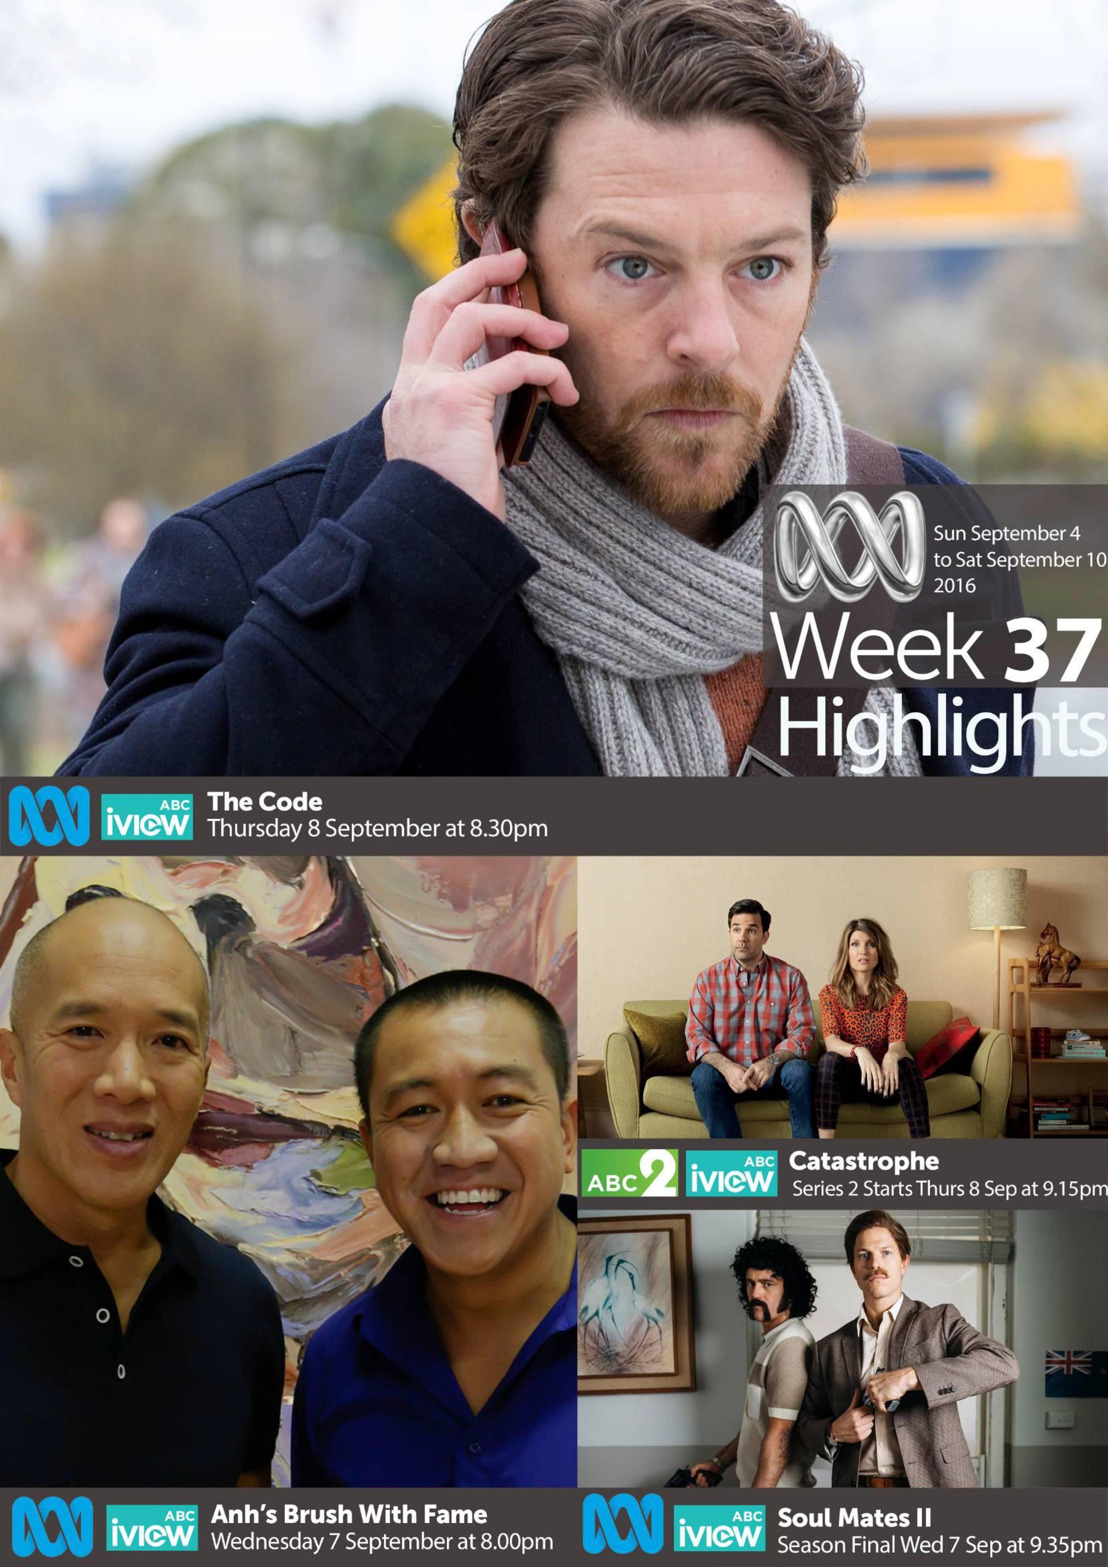 ABC Program Highlights - Week 37